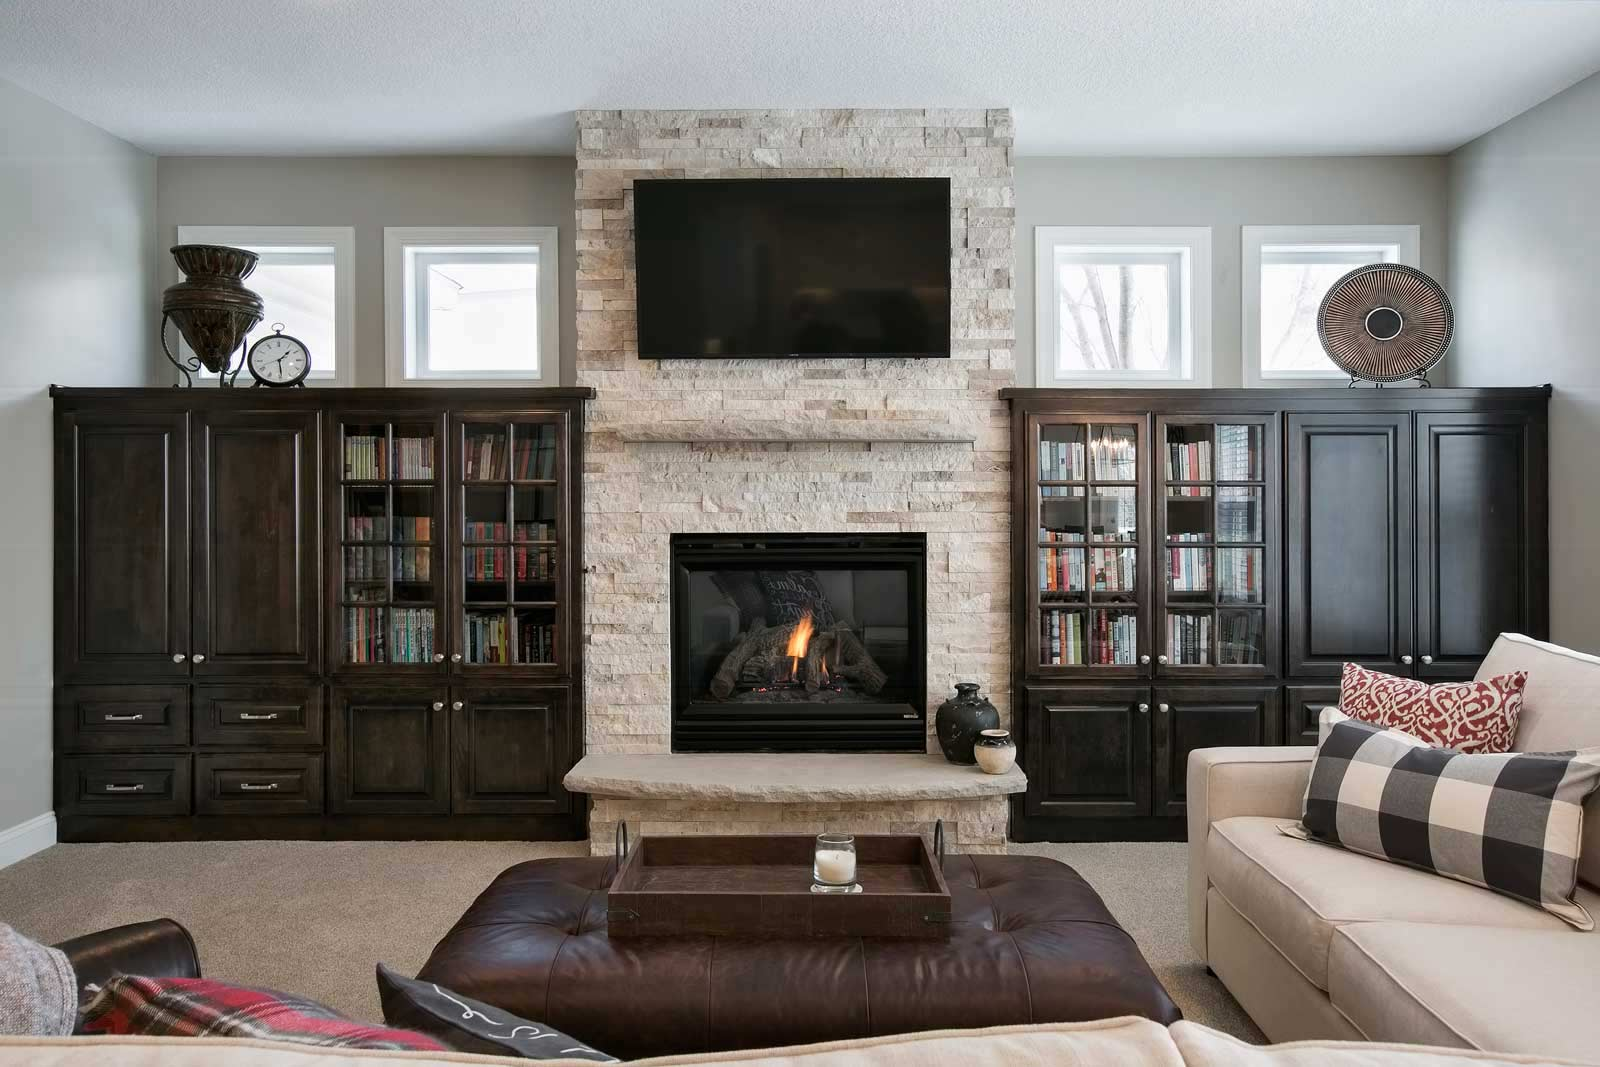 home interior remodeling services james barton design build interior remodeling and design twin cities